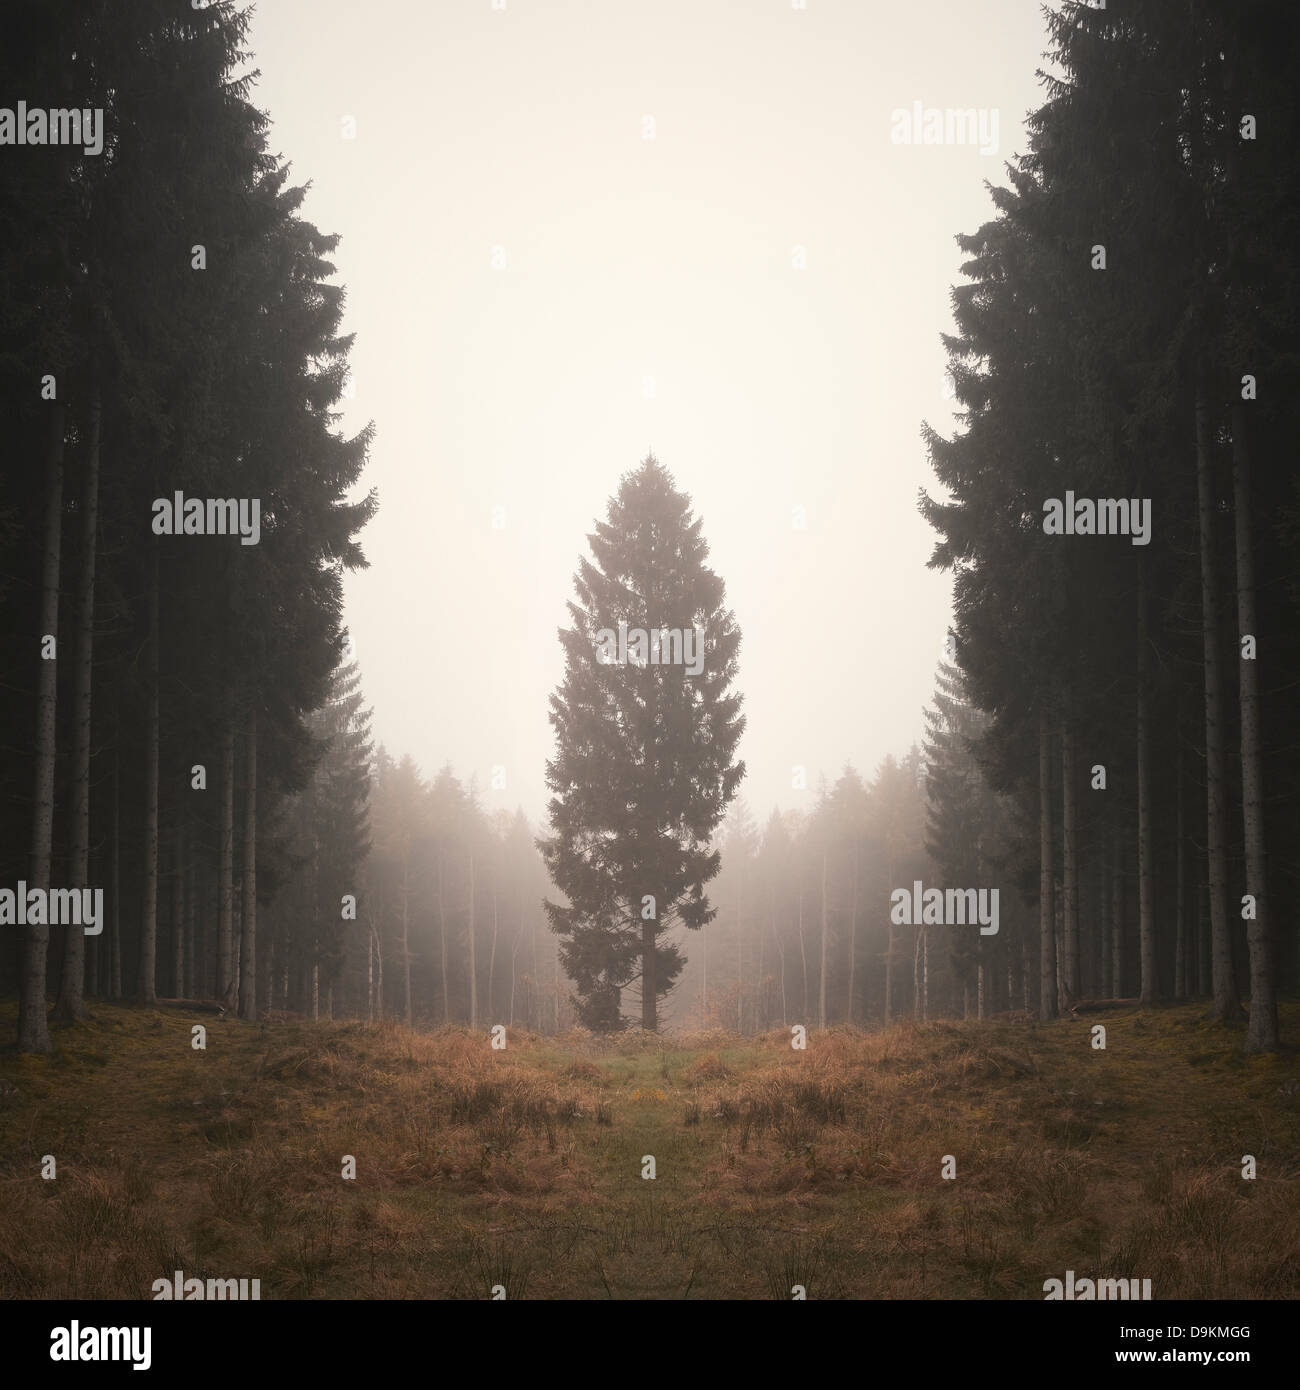 Lone tree in misty forest - Stock Image